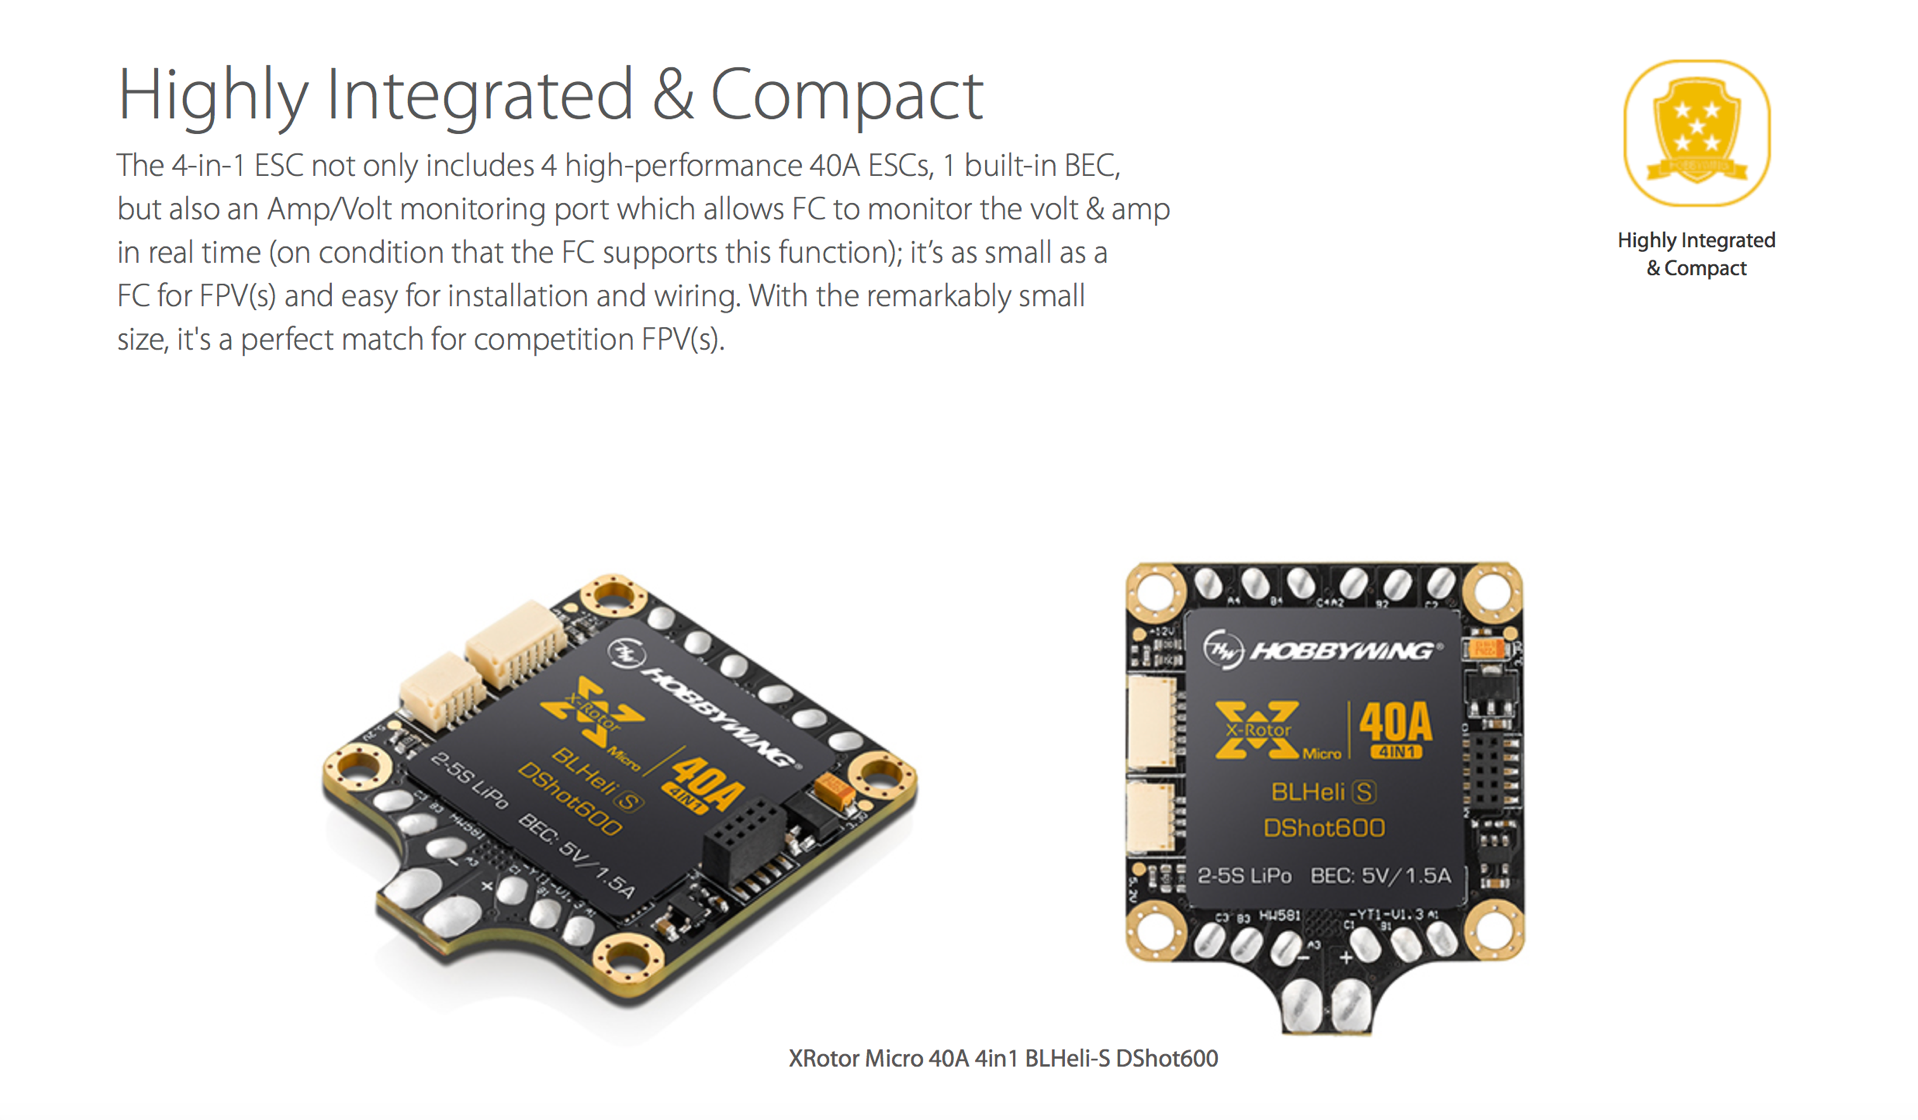 Highly Integrated & Compact. The 4-in-1 ESC not only includes 4 high-performance 40A ESCs, 1 built-in BEC, but also an Amp/Volt monitoring port which allows FC to monitor the volt & amp in real time (on condition that the FC supports this function); it's as small as a FC for FPV(s) and easy for installation and wiring. With the remarkably small size, it's a perfect match for competition FPV(s).